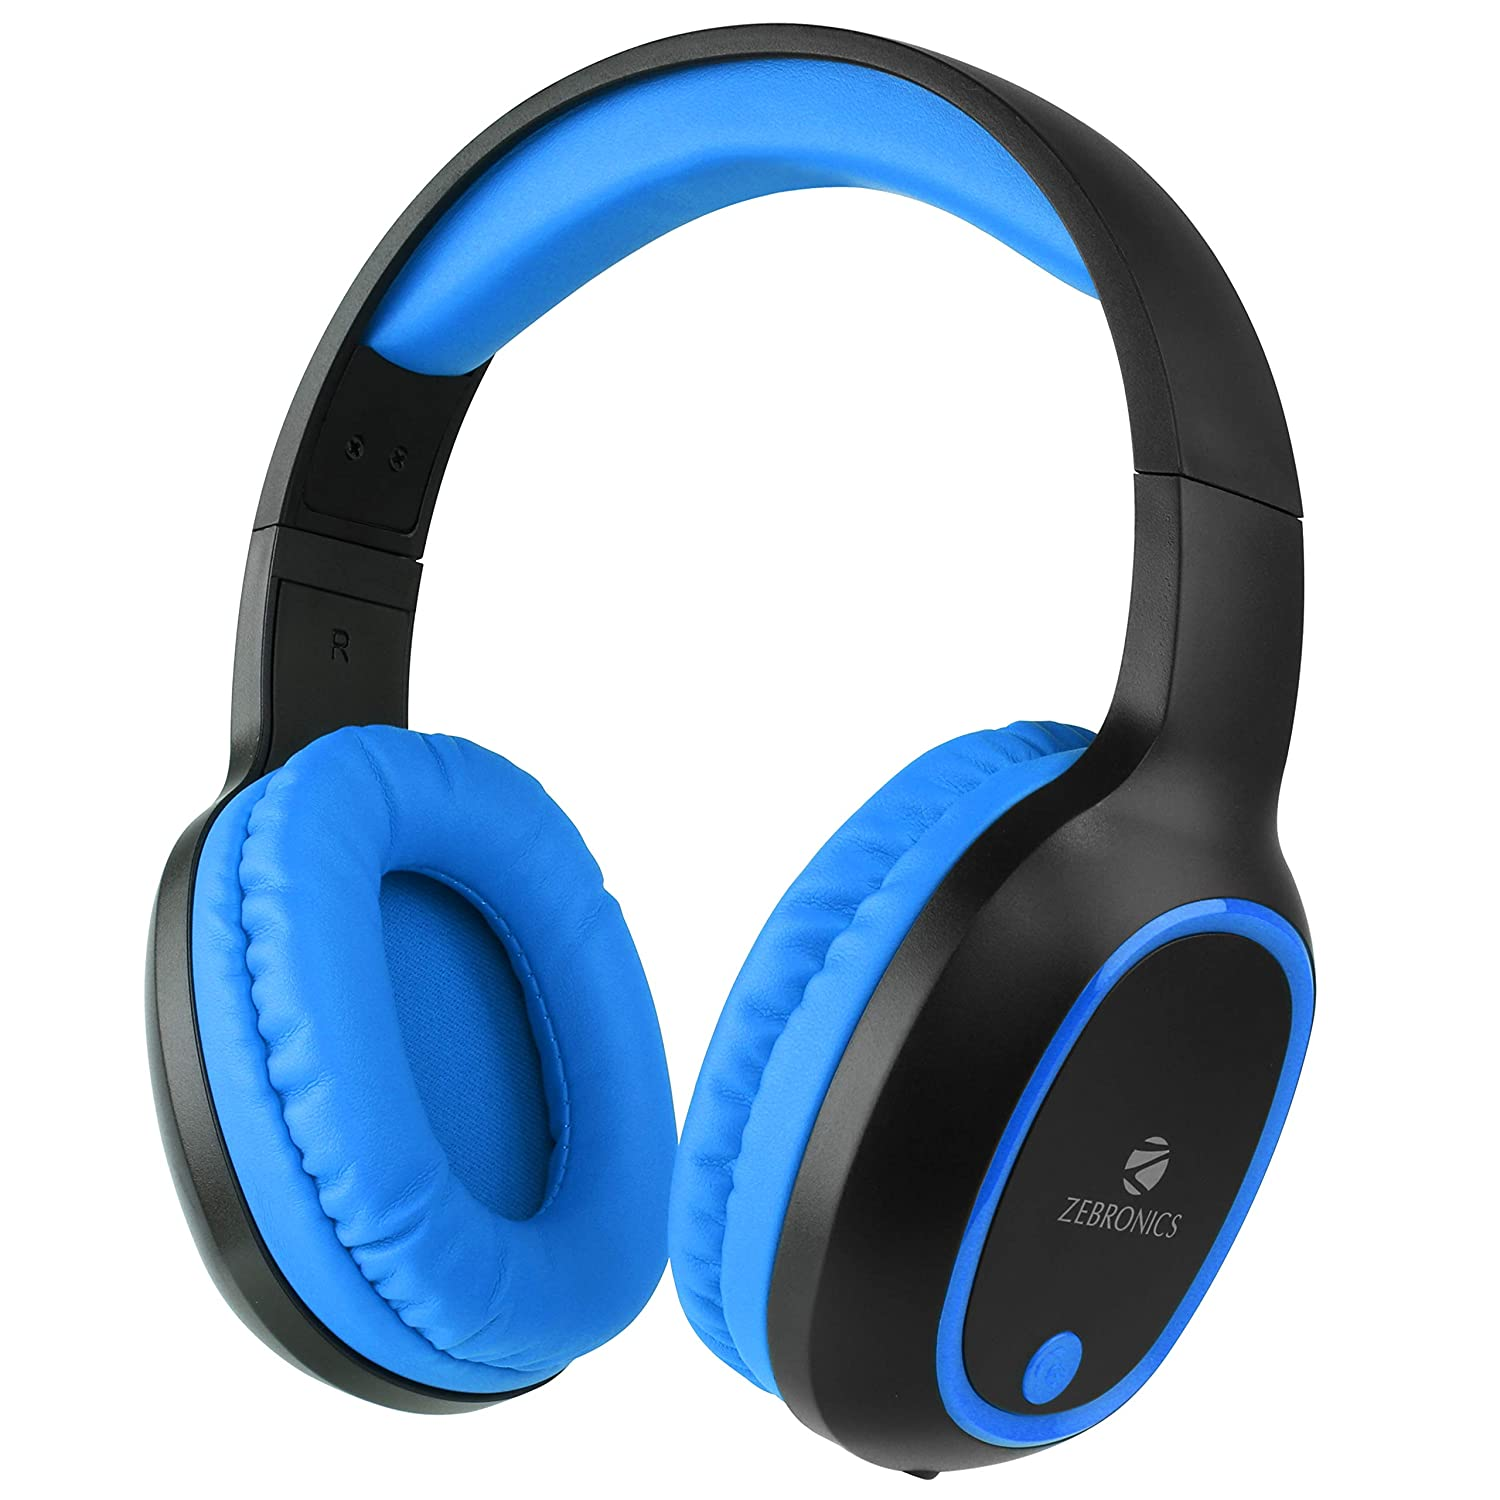 Zebronics Zeb-Thunder Wireless BT Headphone with Built-in FM,AUX Connectivity and Micro SD Card Support(Blue)